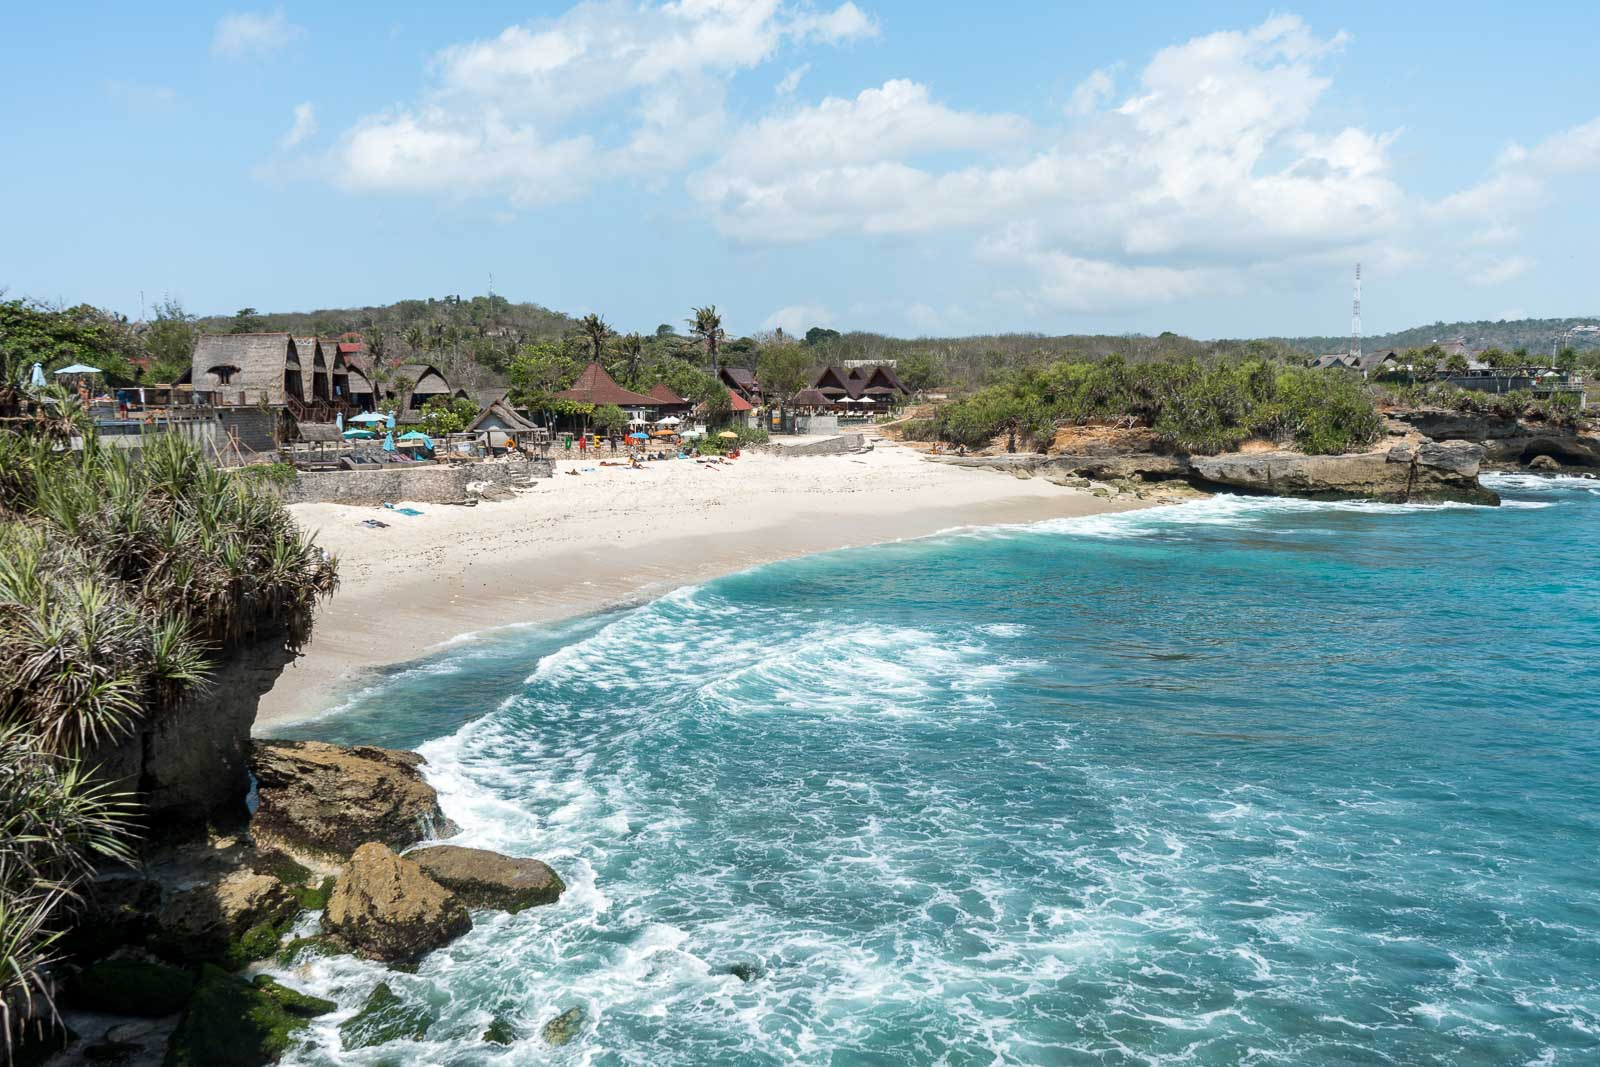 Dream Beach on Nusa Lembongan